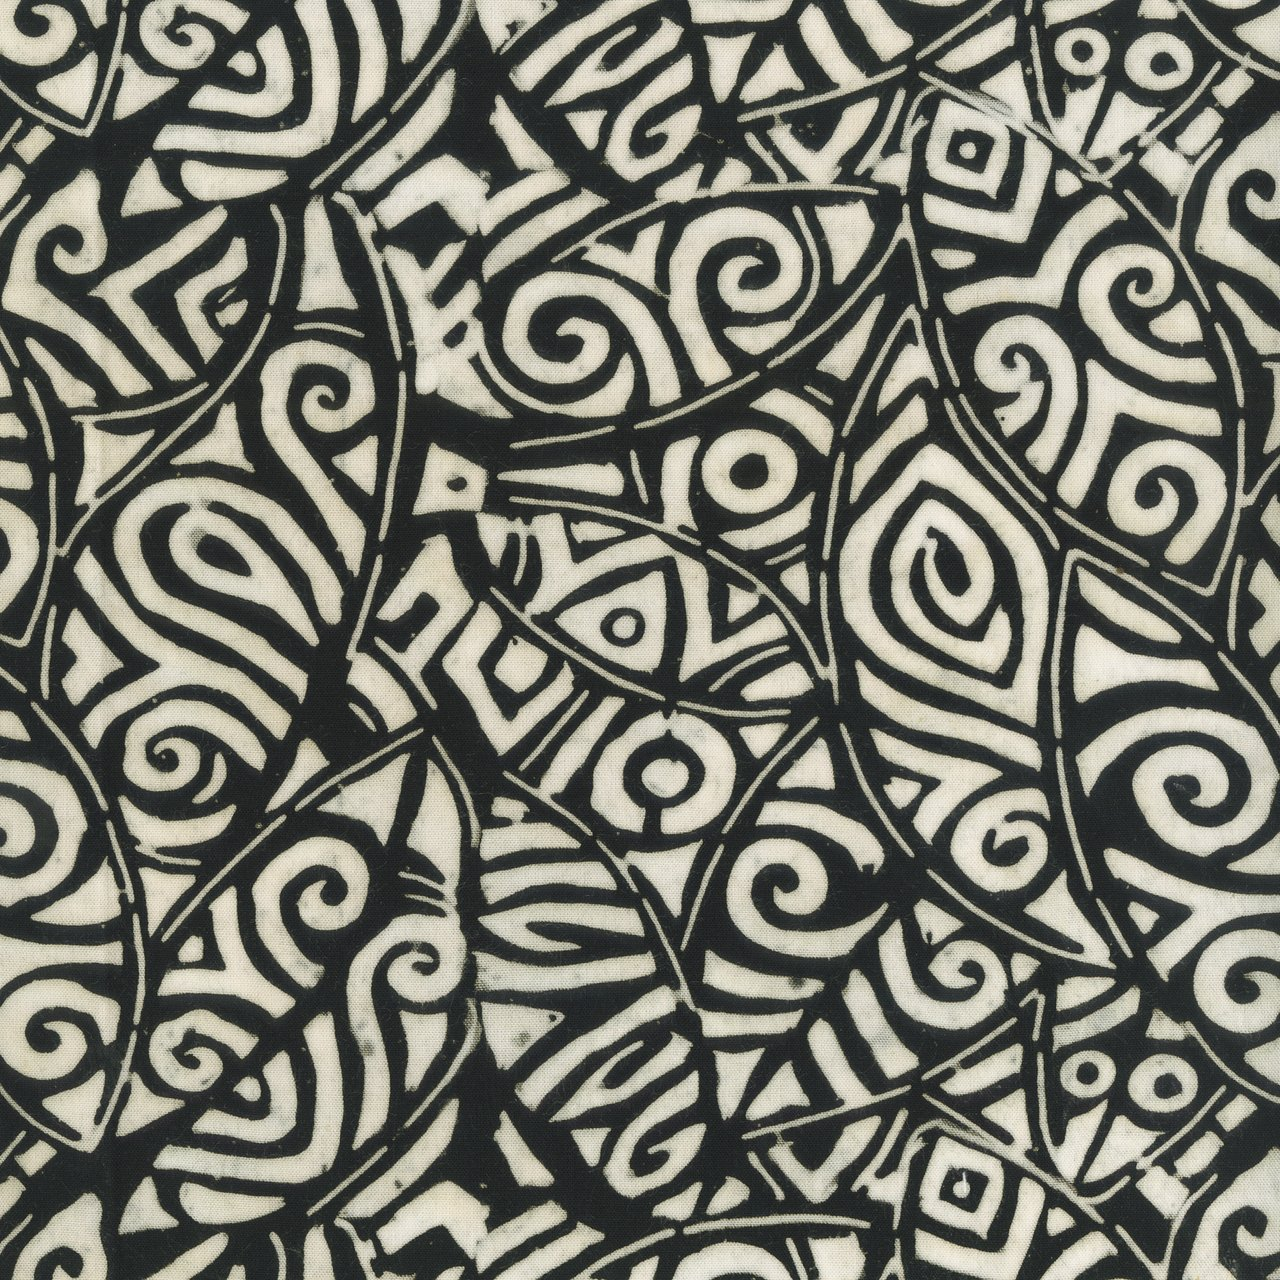 Zebra RAYON batik 502Q-4 Anthology Fabrics